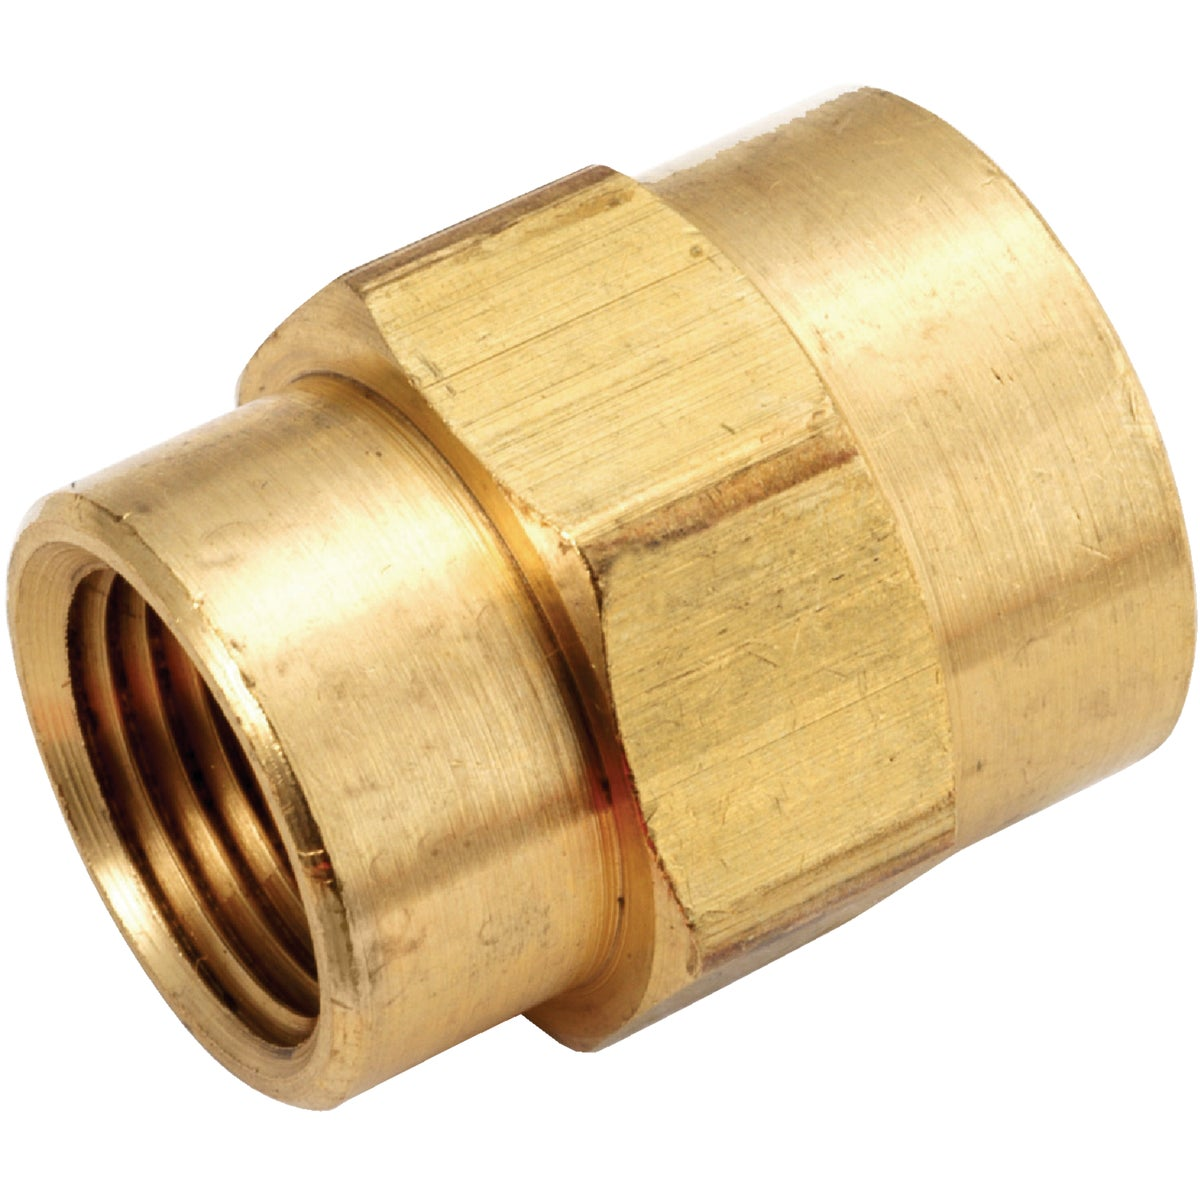 1/2X3/8 BRASS REDUC CPLN - 756119-0806 by Anderson Metals Corp